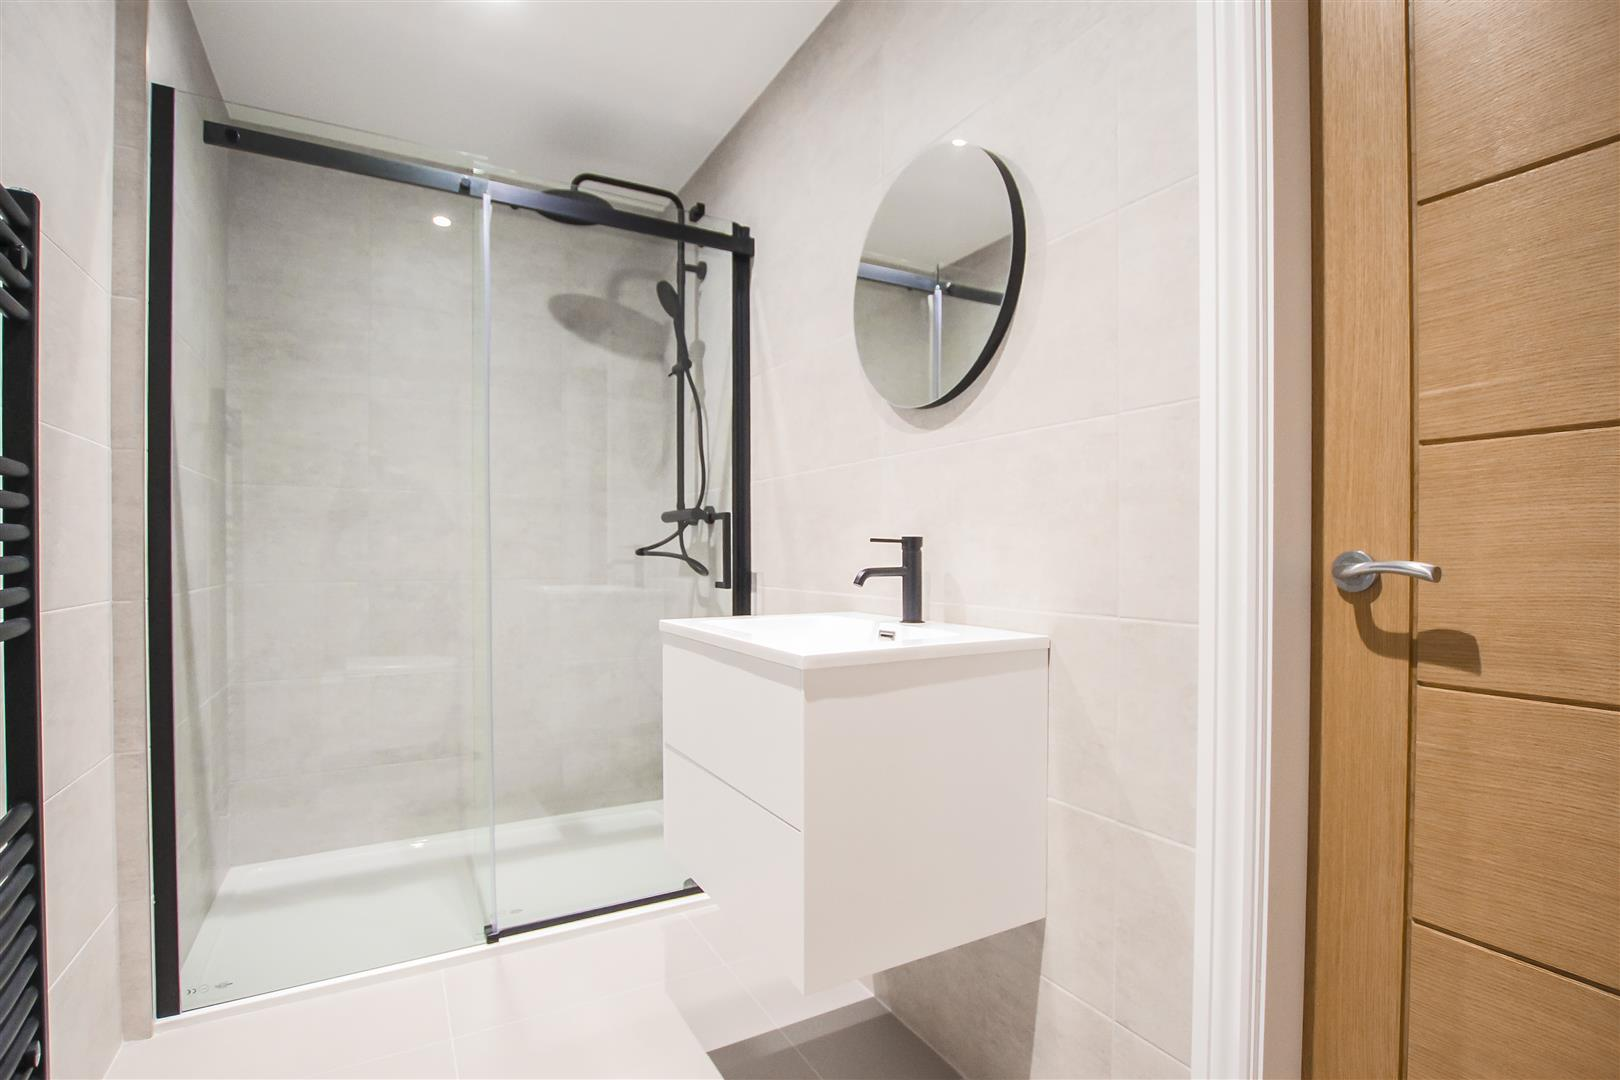 2 Bedroom Apartment For Sale - Image 22